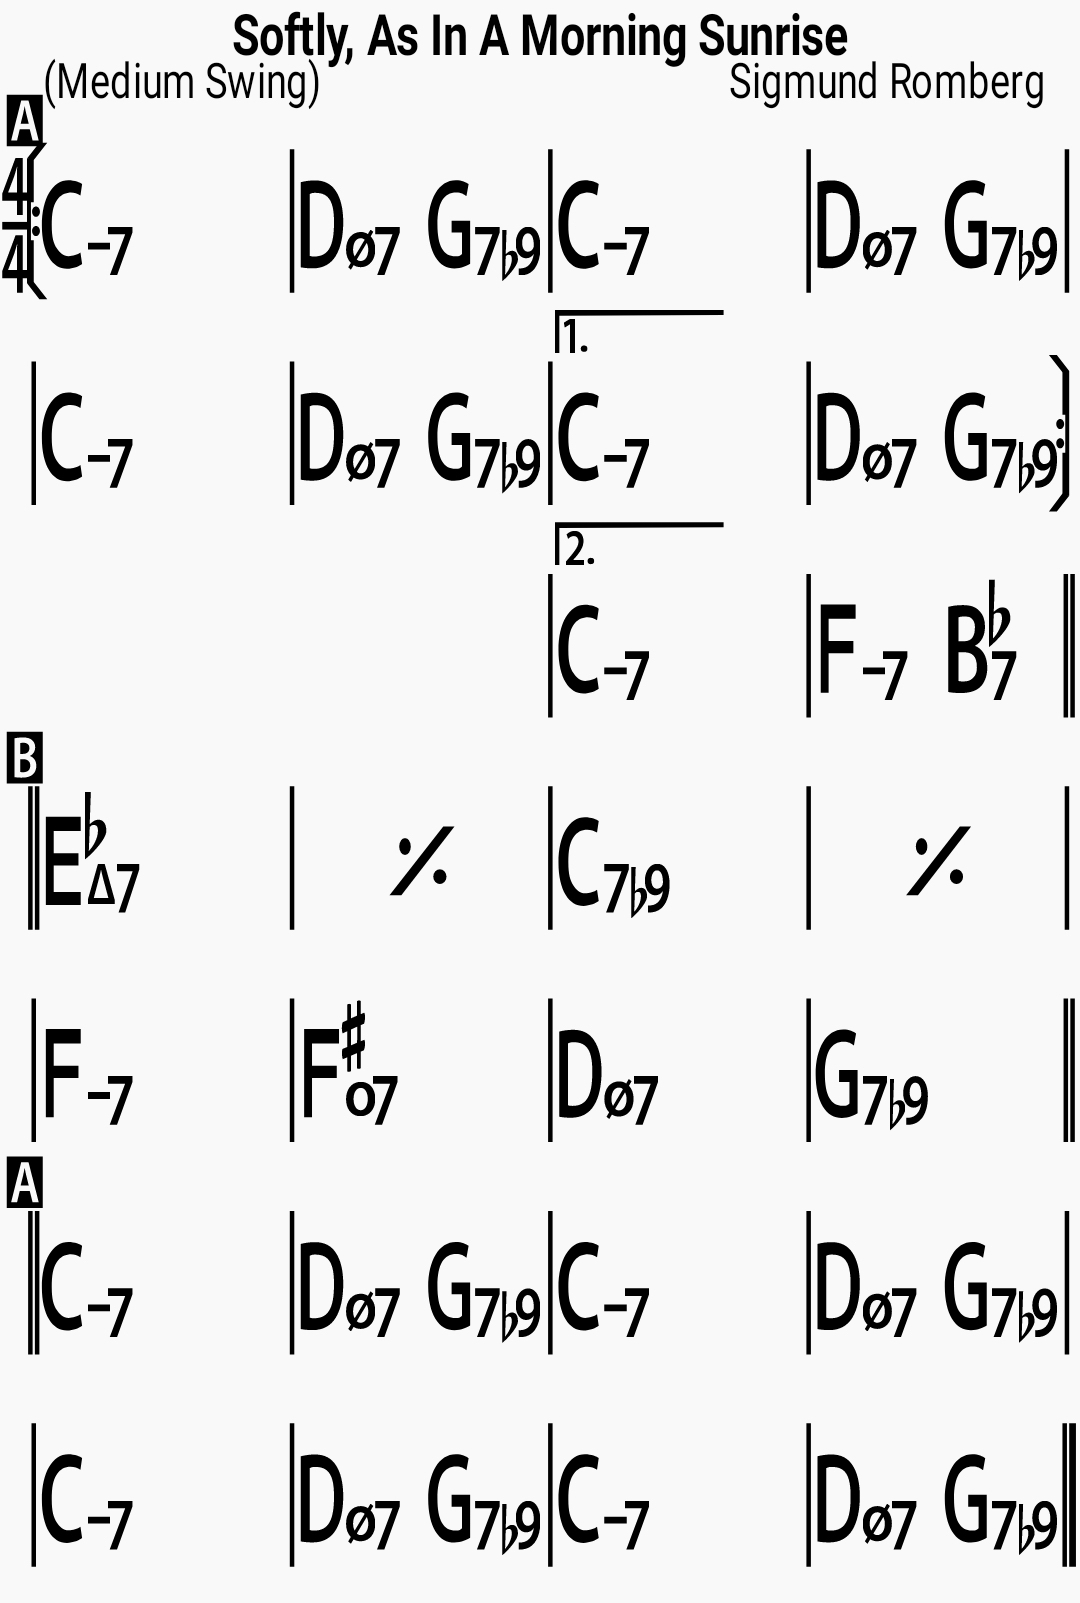 Chord chart for the jazz standard Softly As In A Morning Sunrise